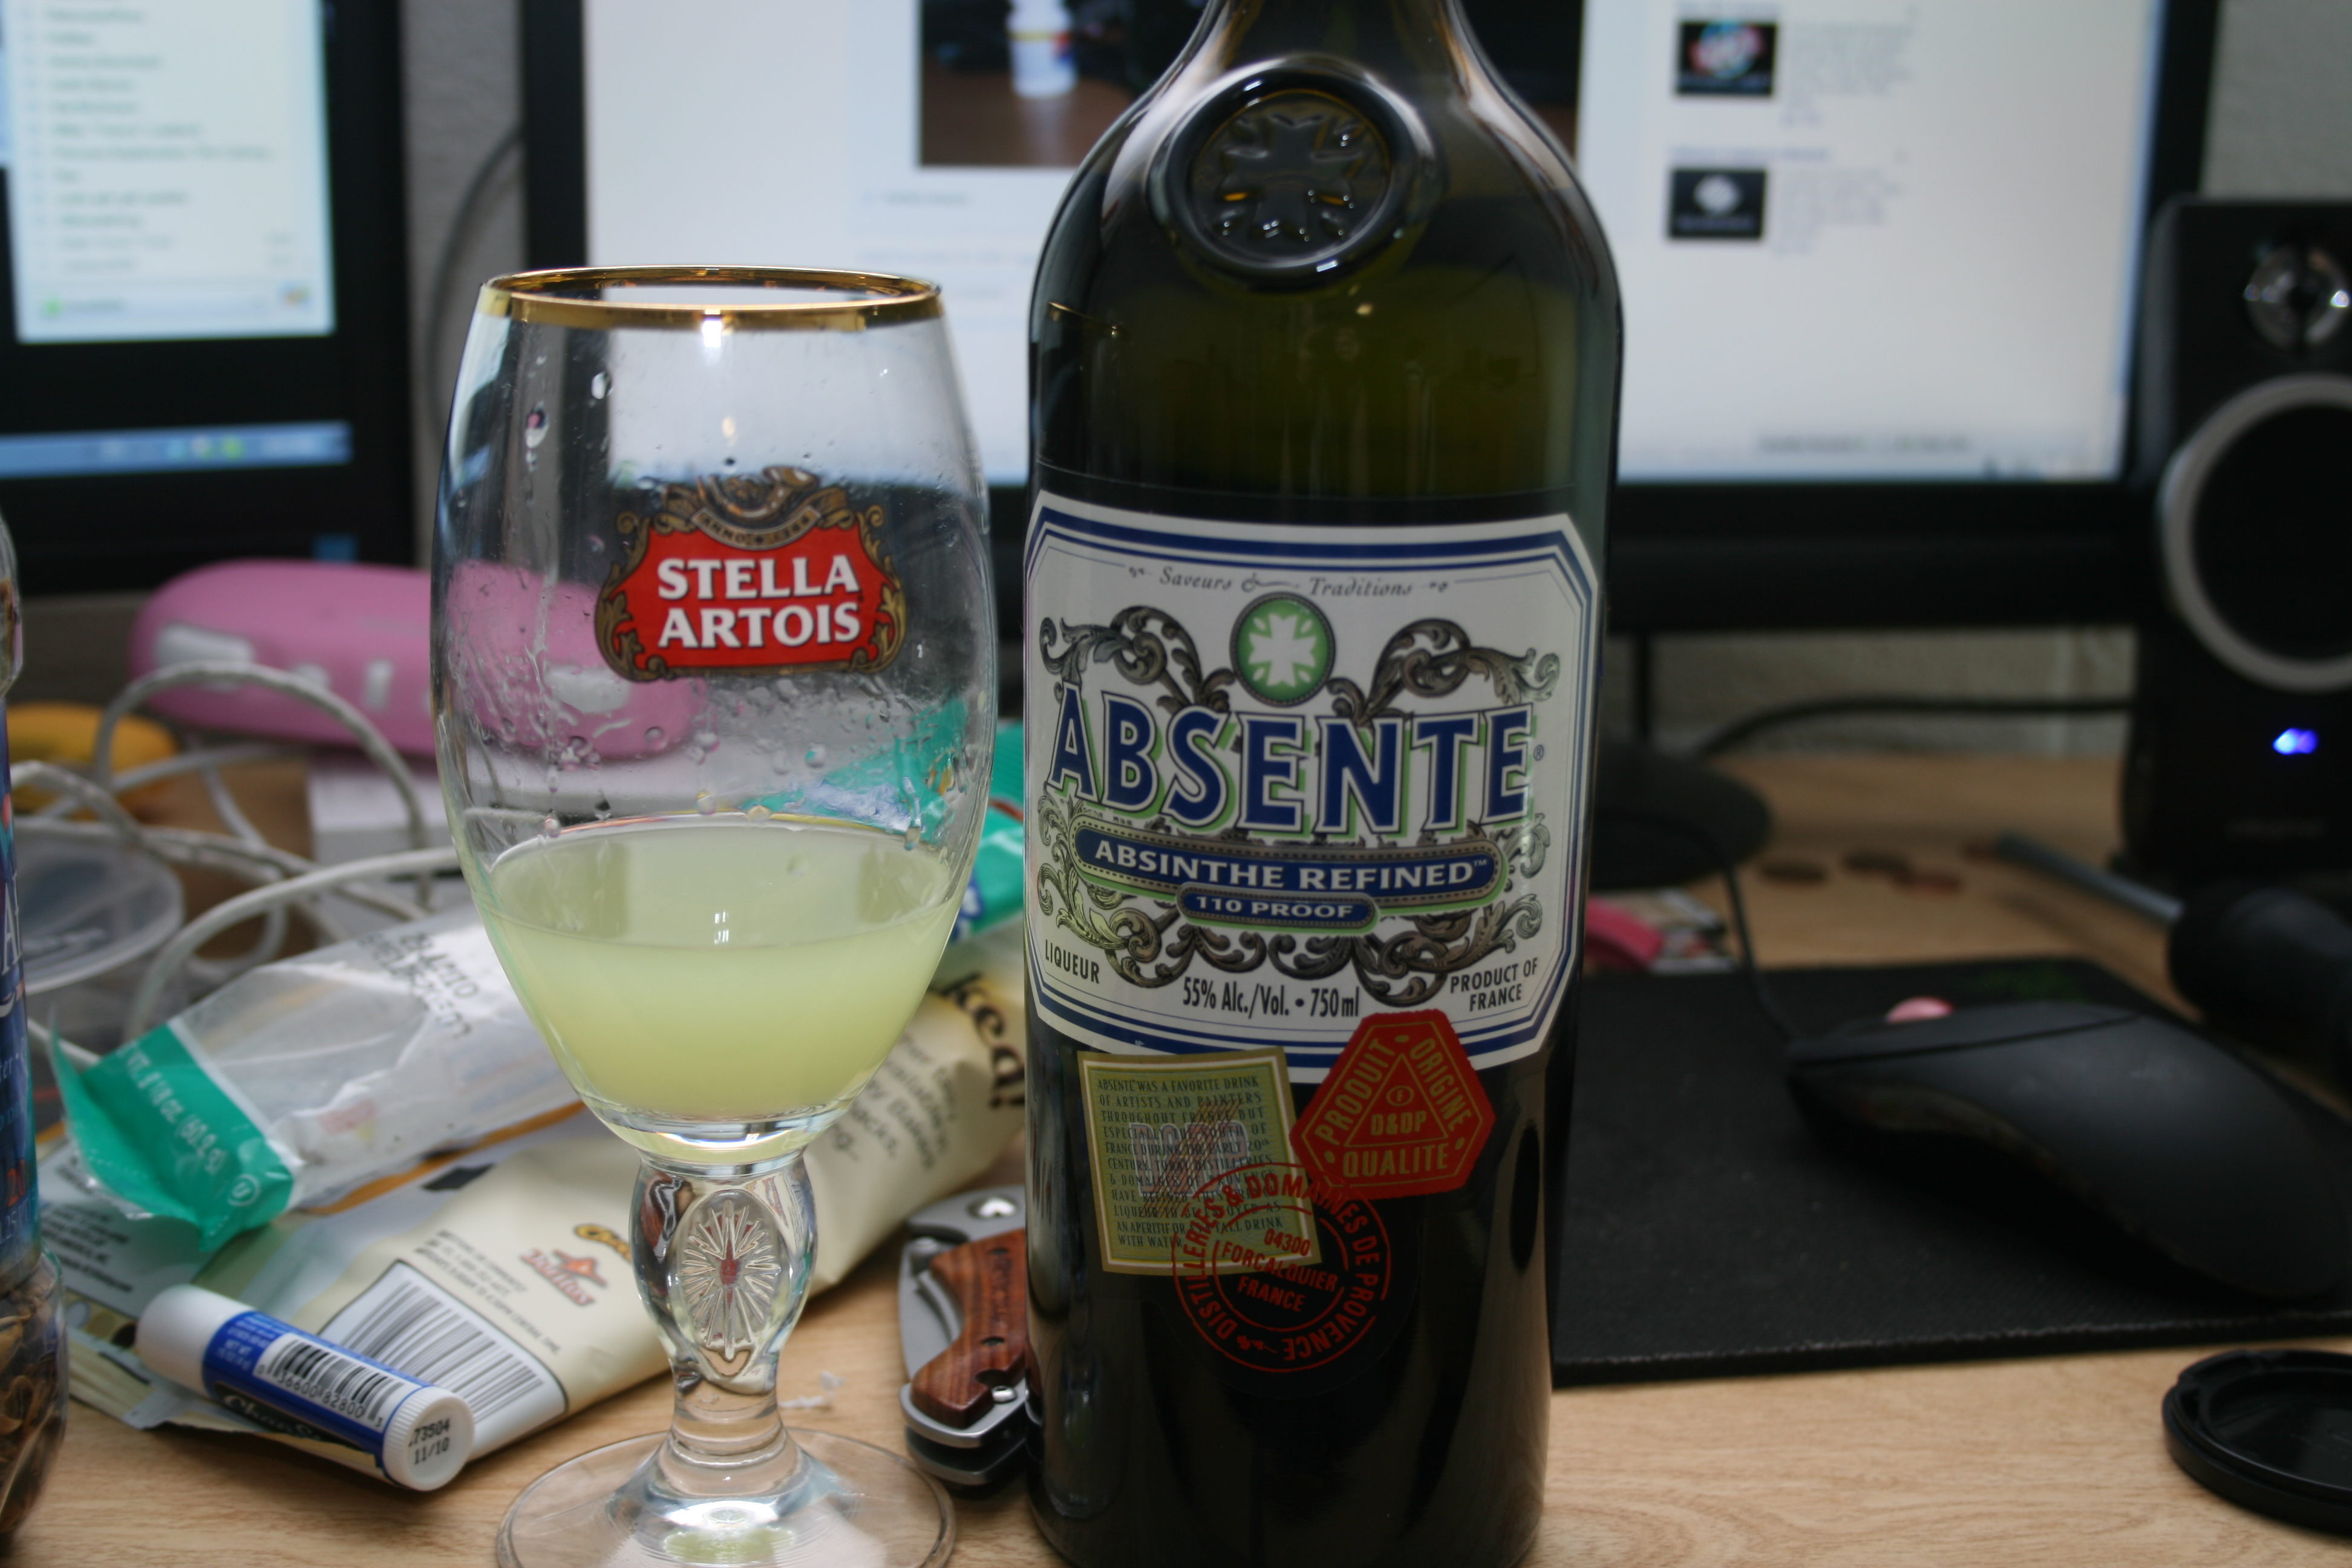 Keene, Nh :: Absinthe I went shopping for with James D!